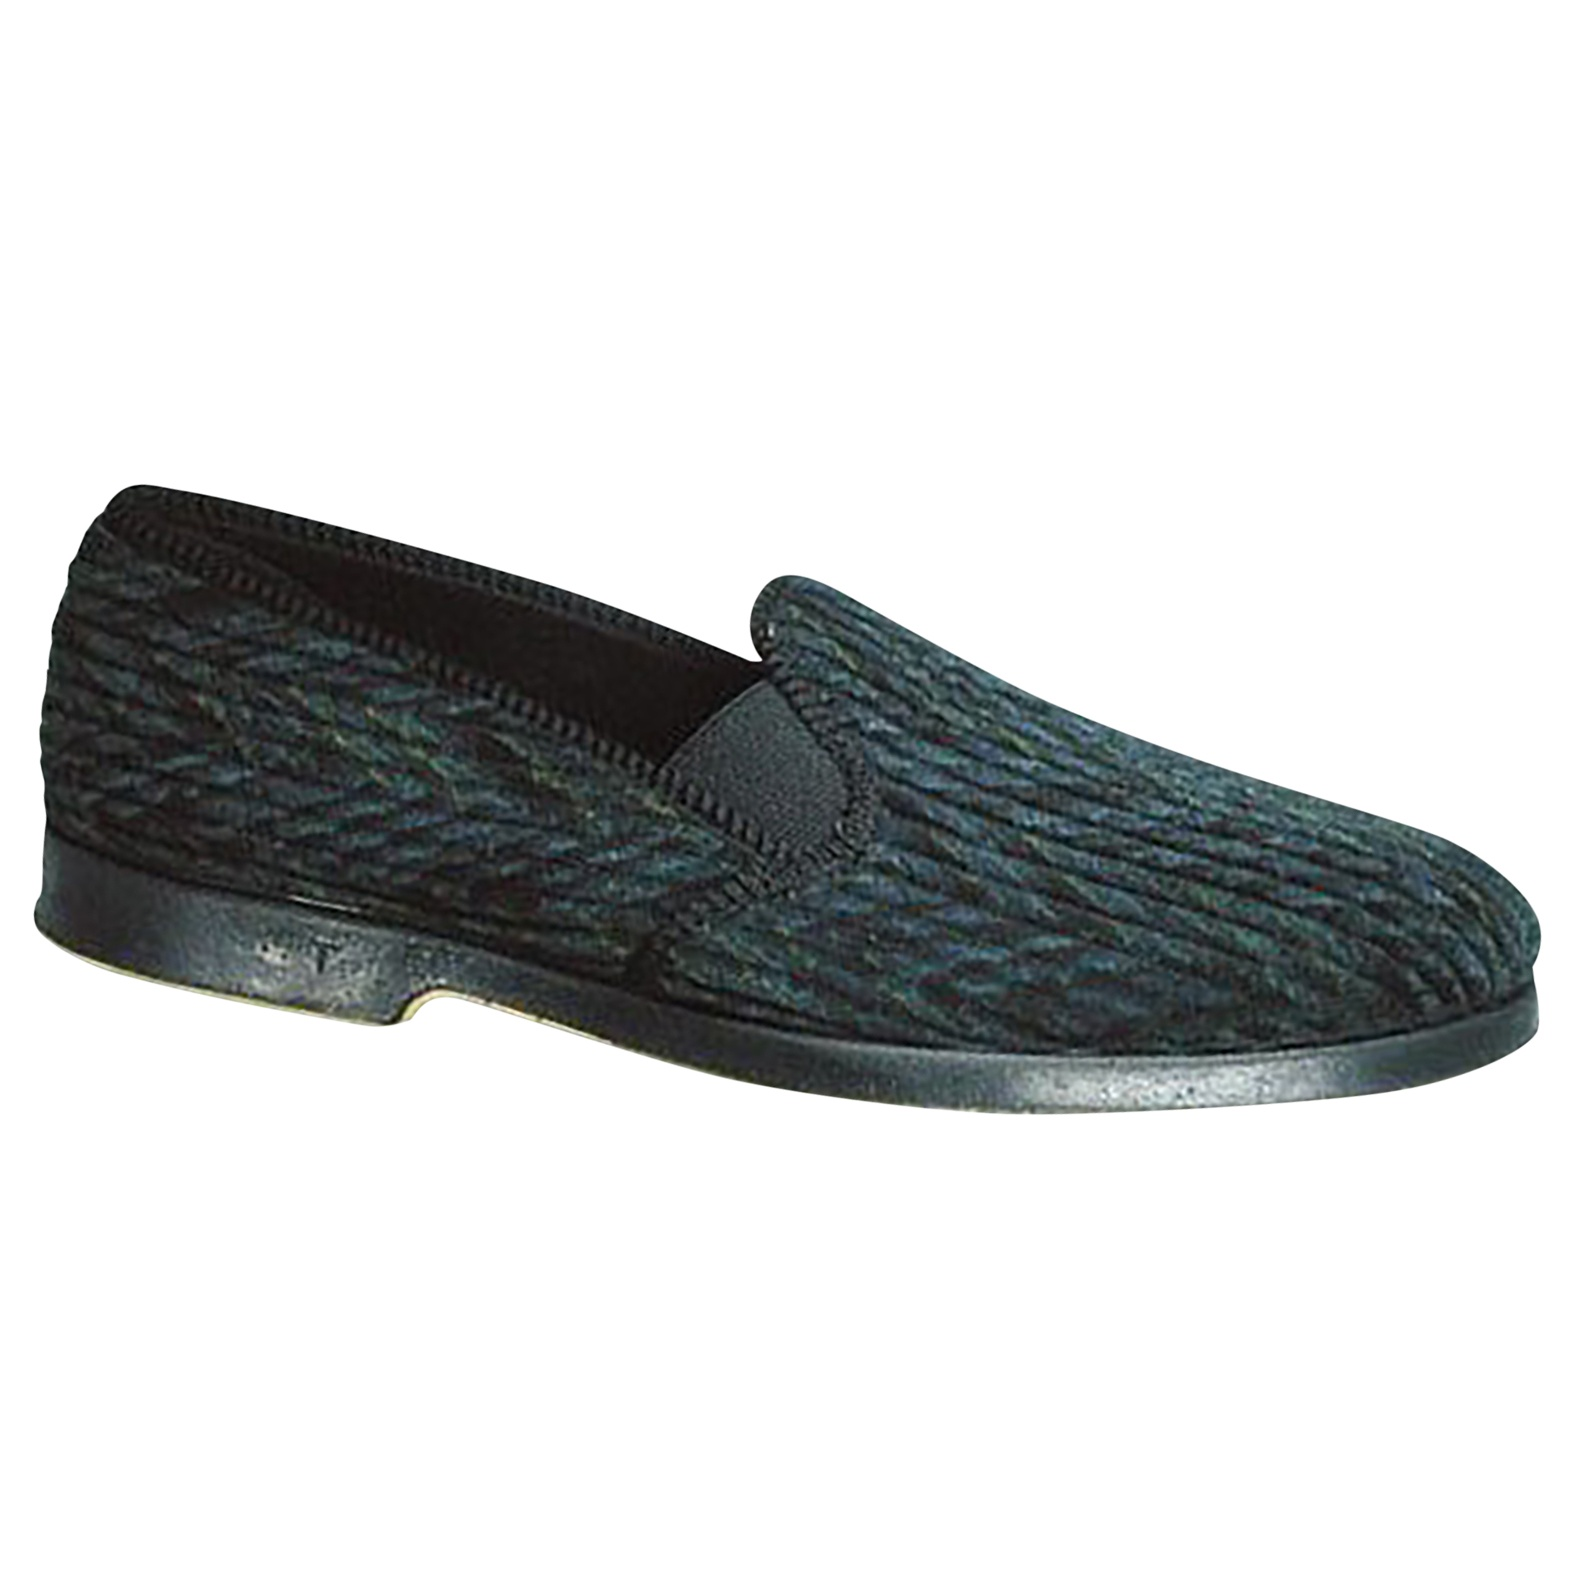 GBS Lonsdale Mens Twin Gusset Loafer Slip-on Slippers /Indoor Footwear (FS107)